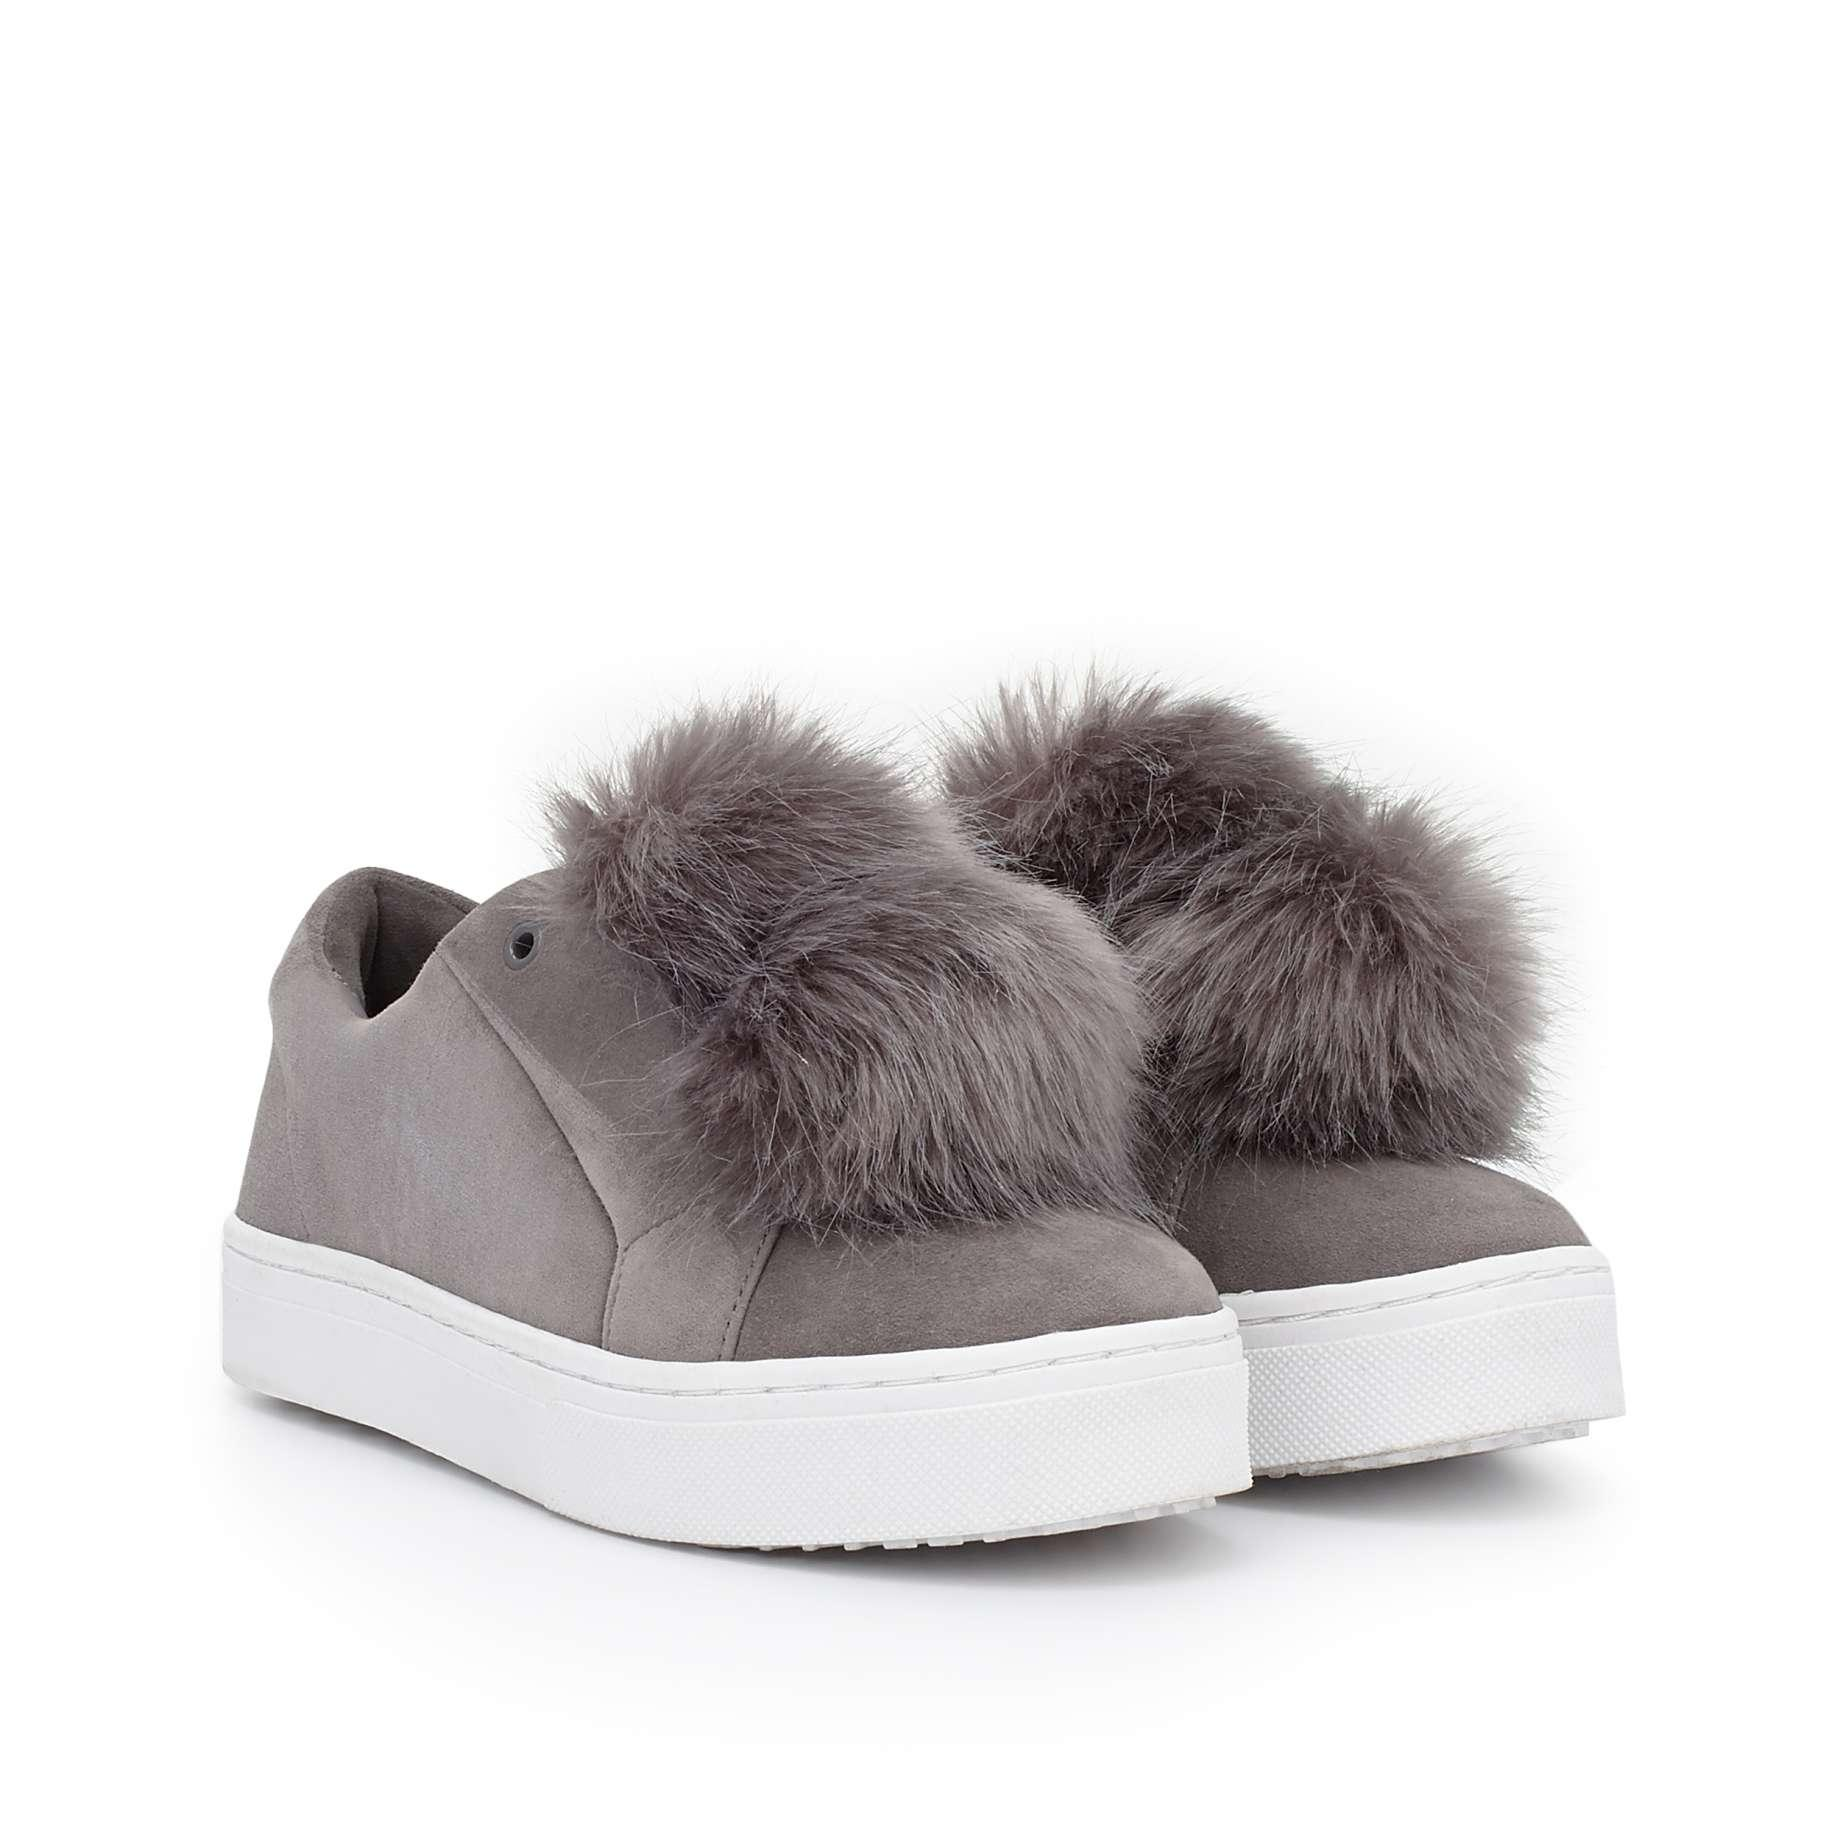 Sam Edelman Sneaker Yeezy Puff Ball Faux Fur Party Grey Athletic ...